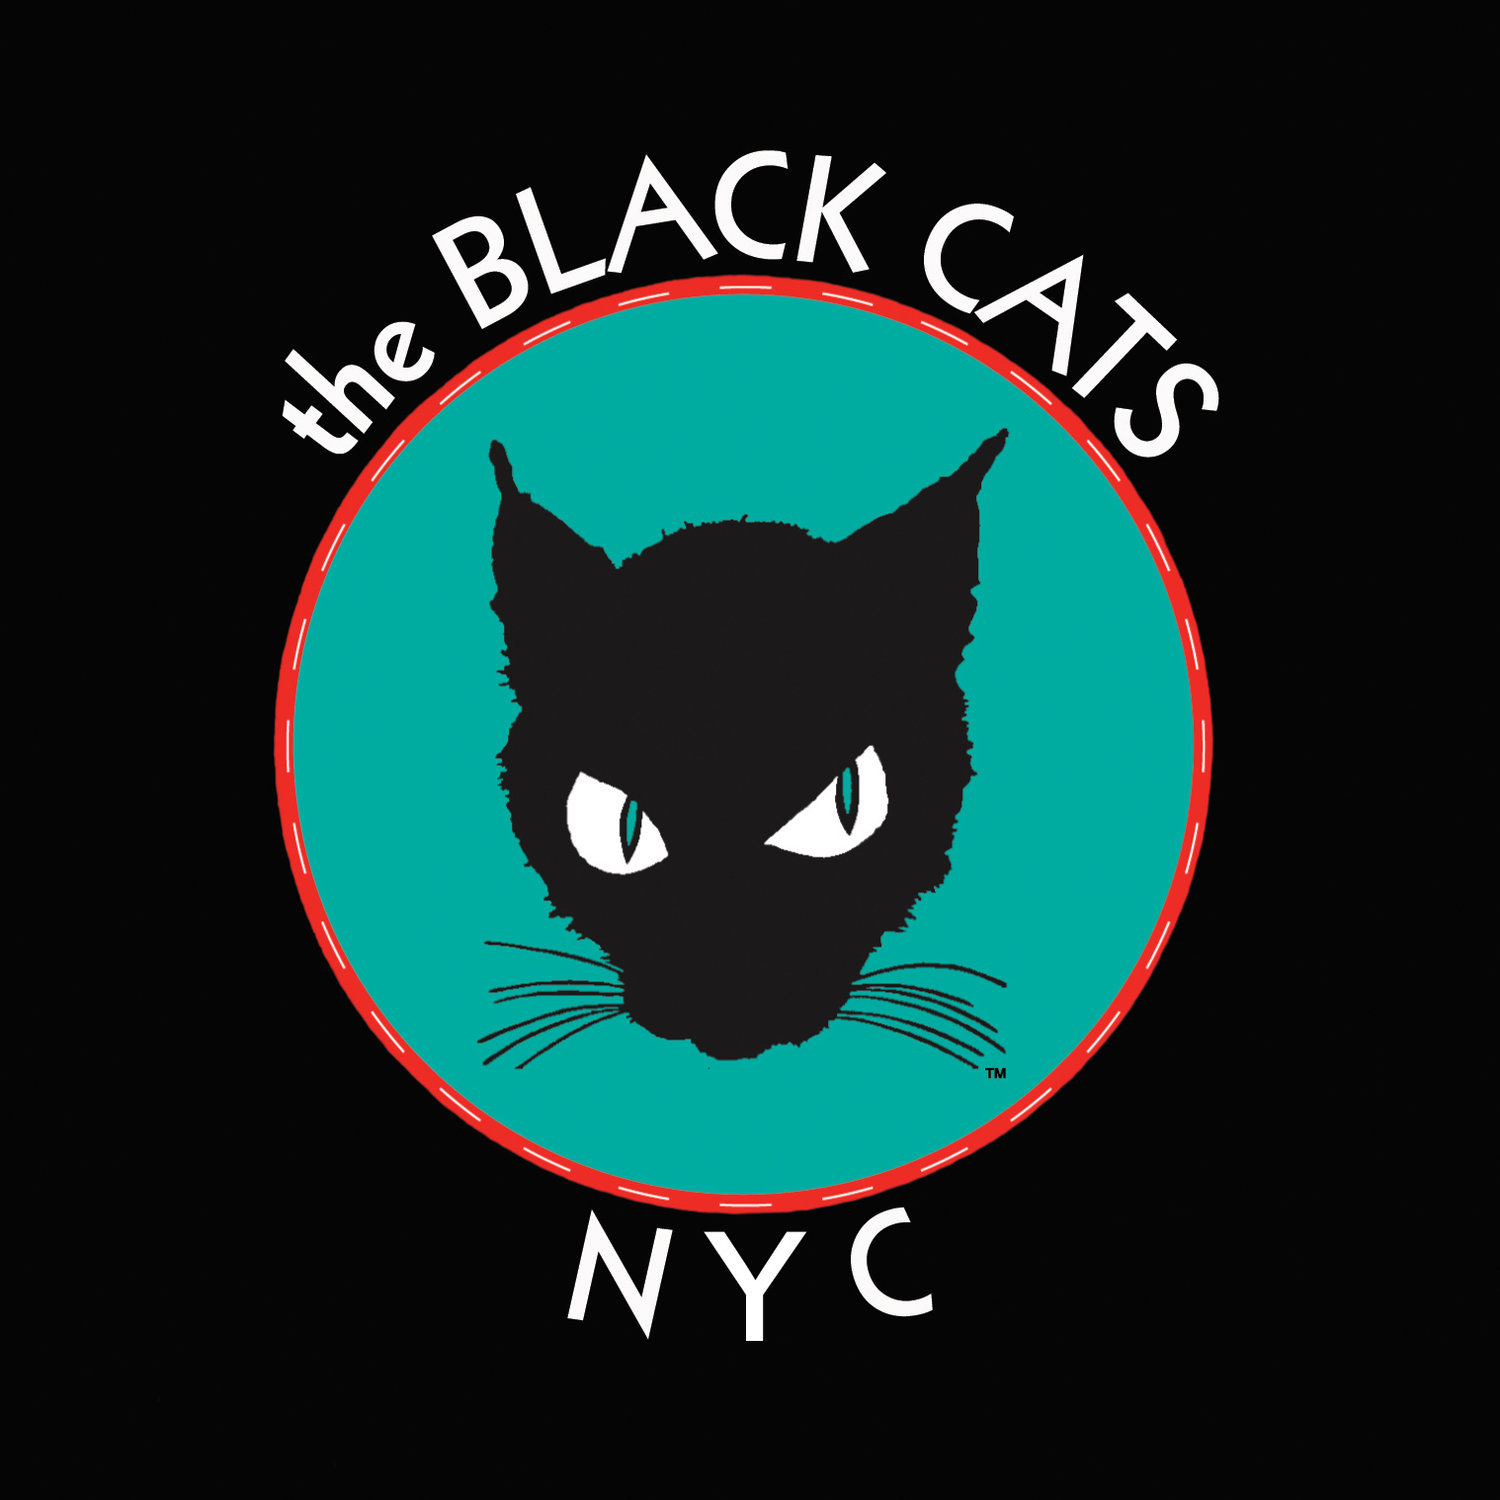 the Black Cats of NYC